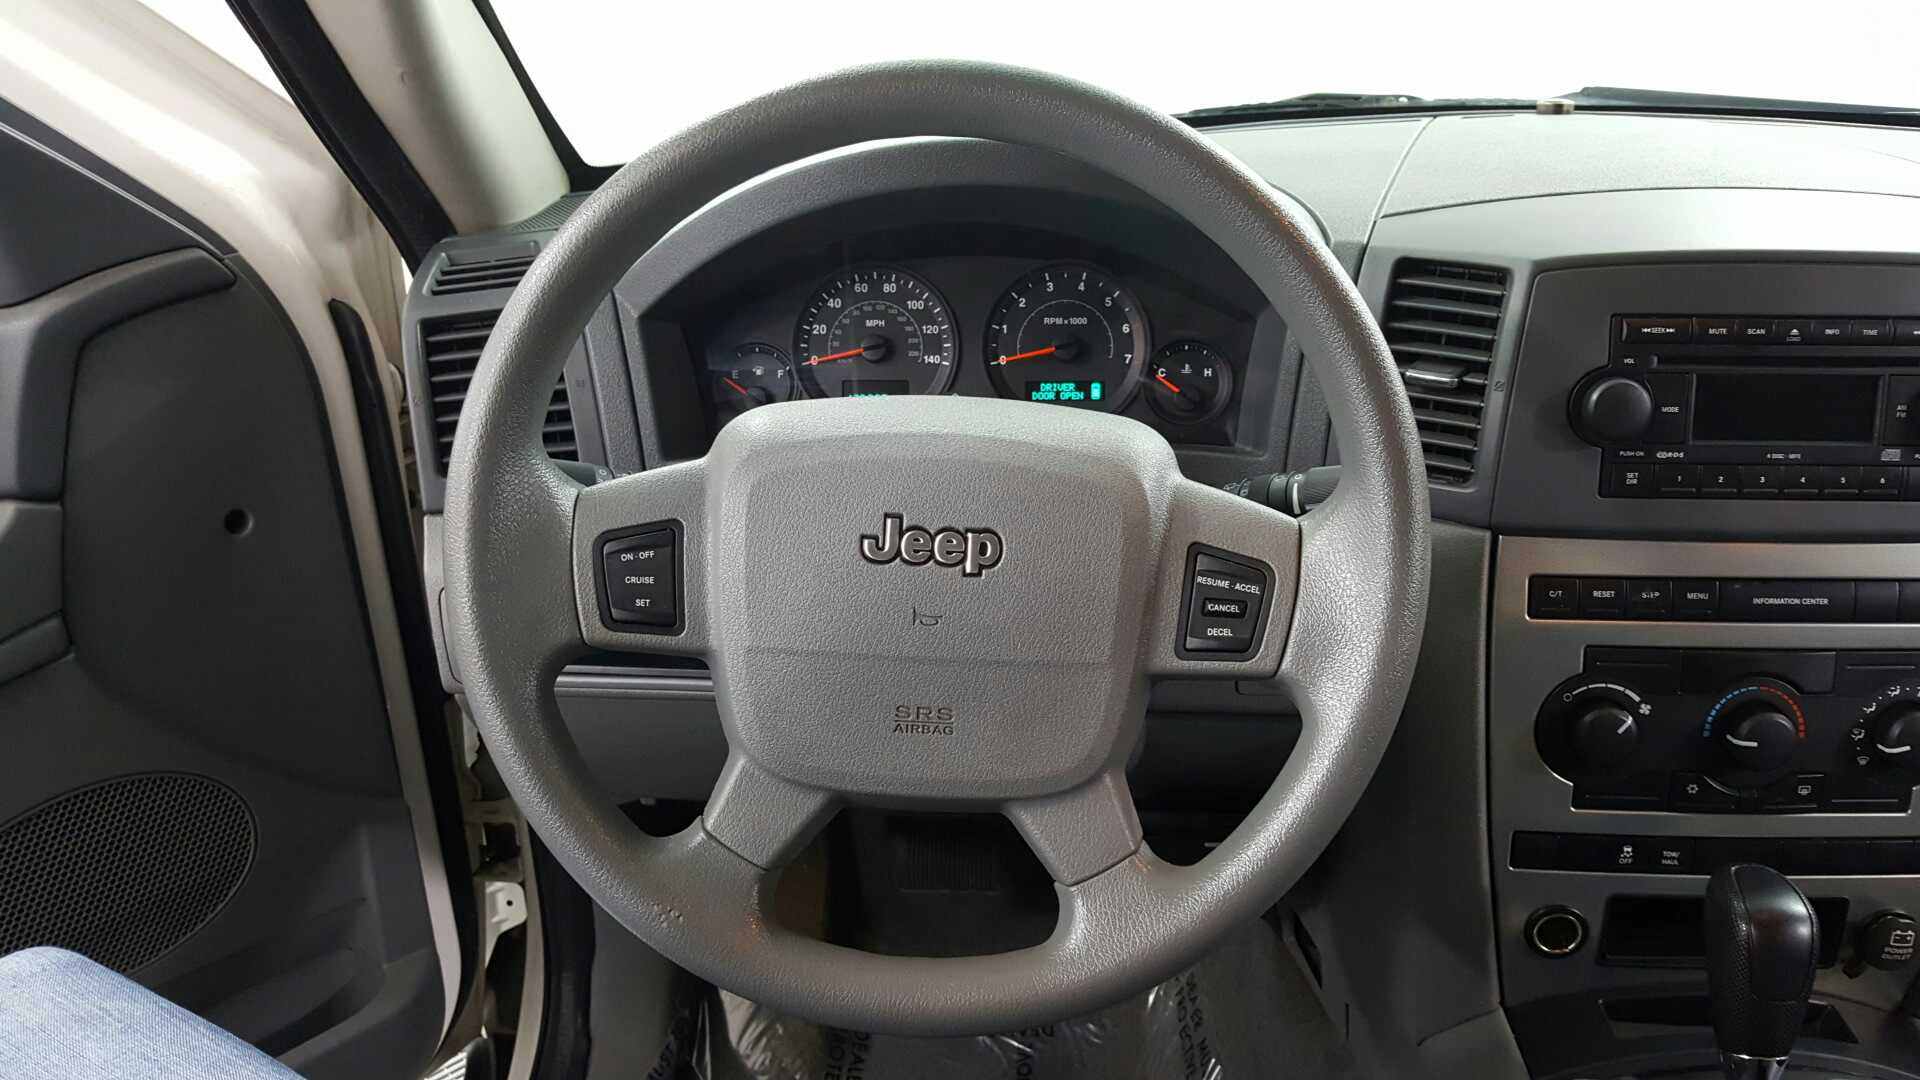 2005 Jeep Grand Cherokee Laredo - Jidd Motors